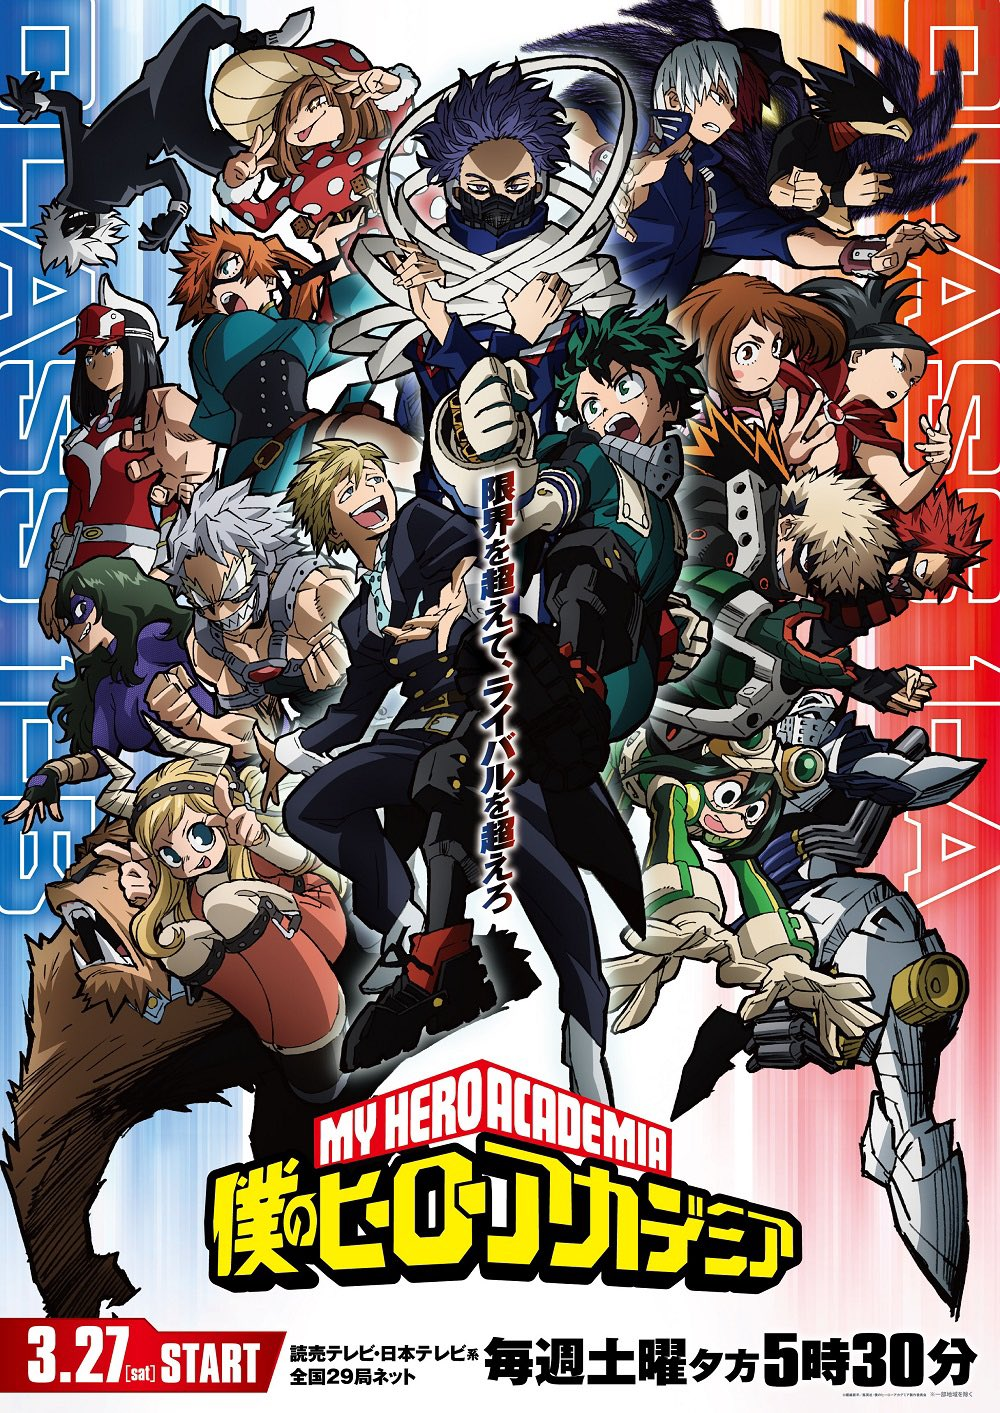 My Hero Academia Season 5 visual